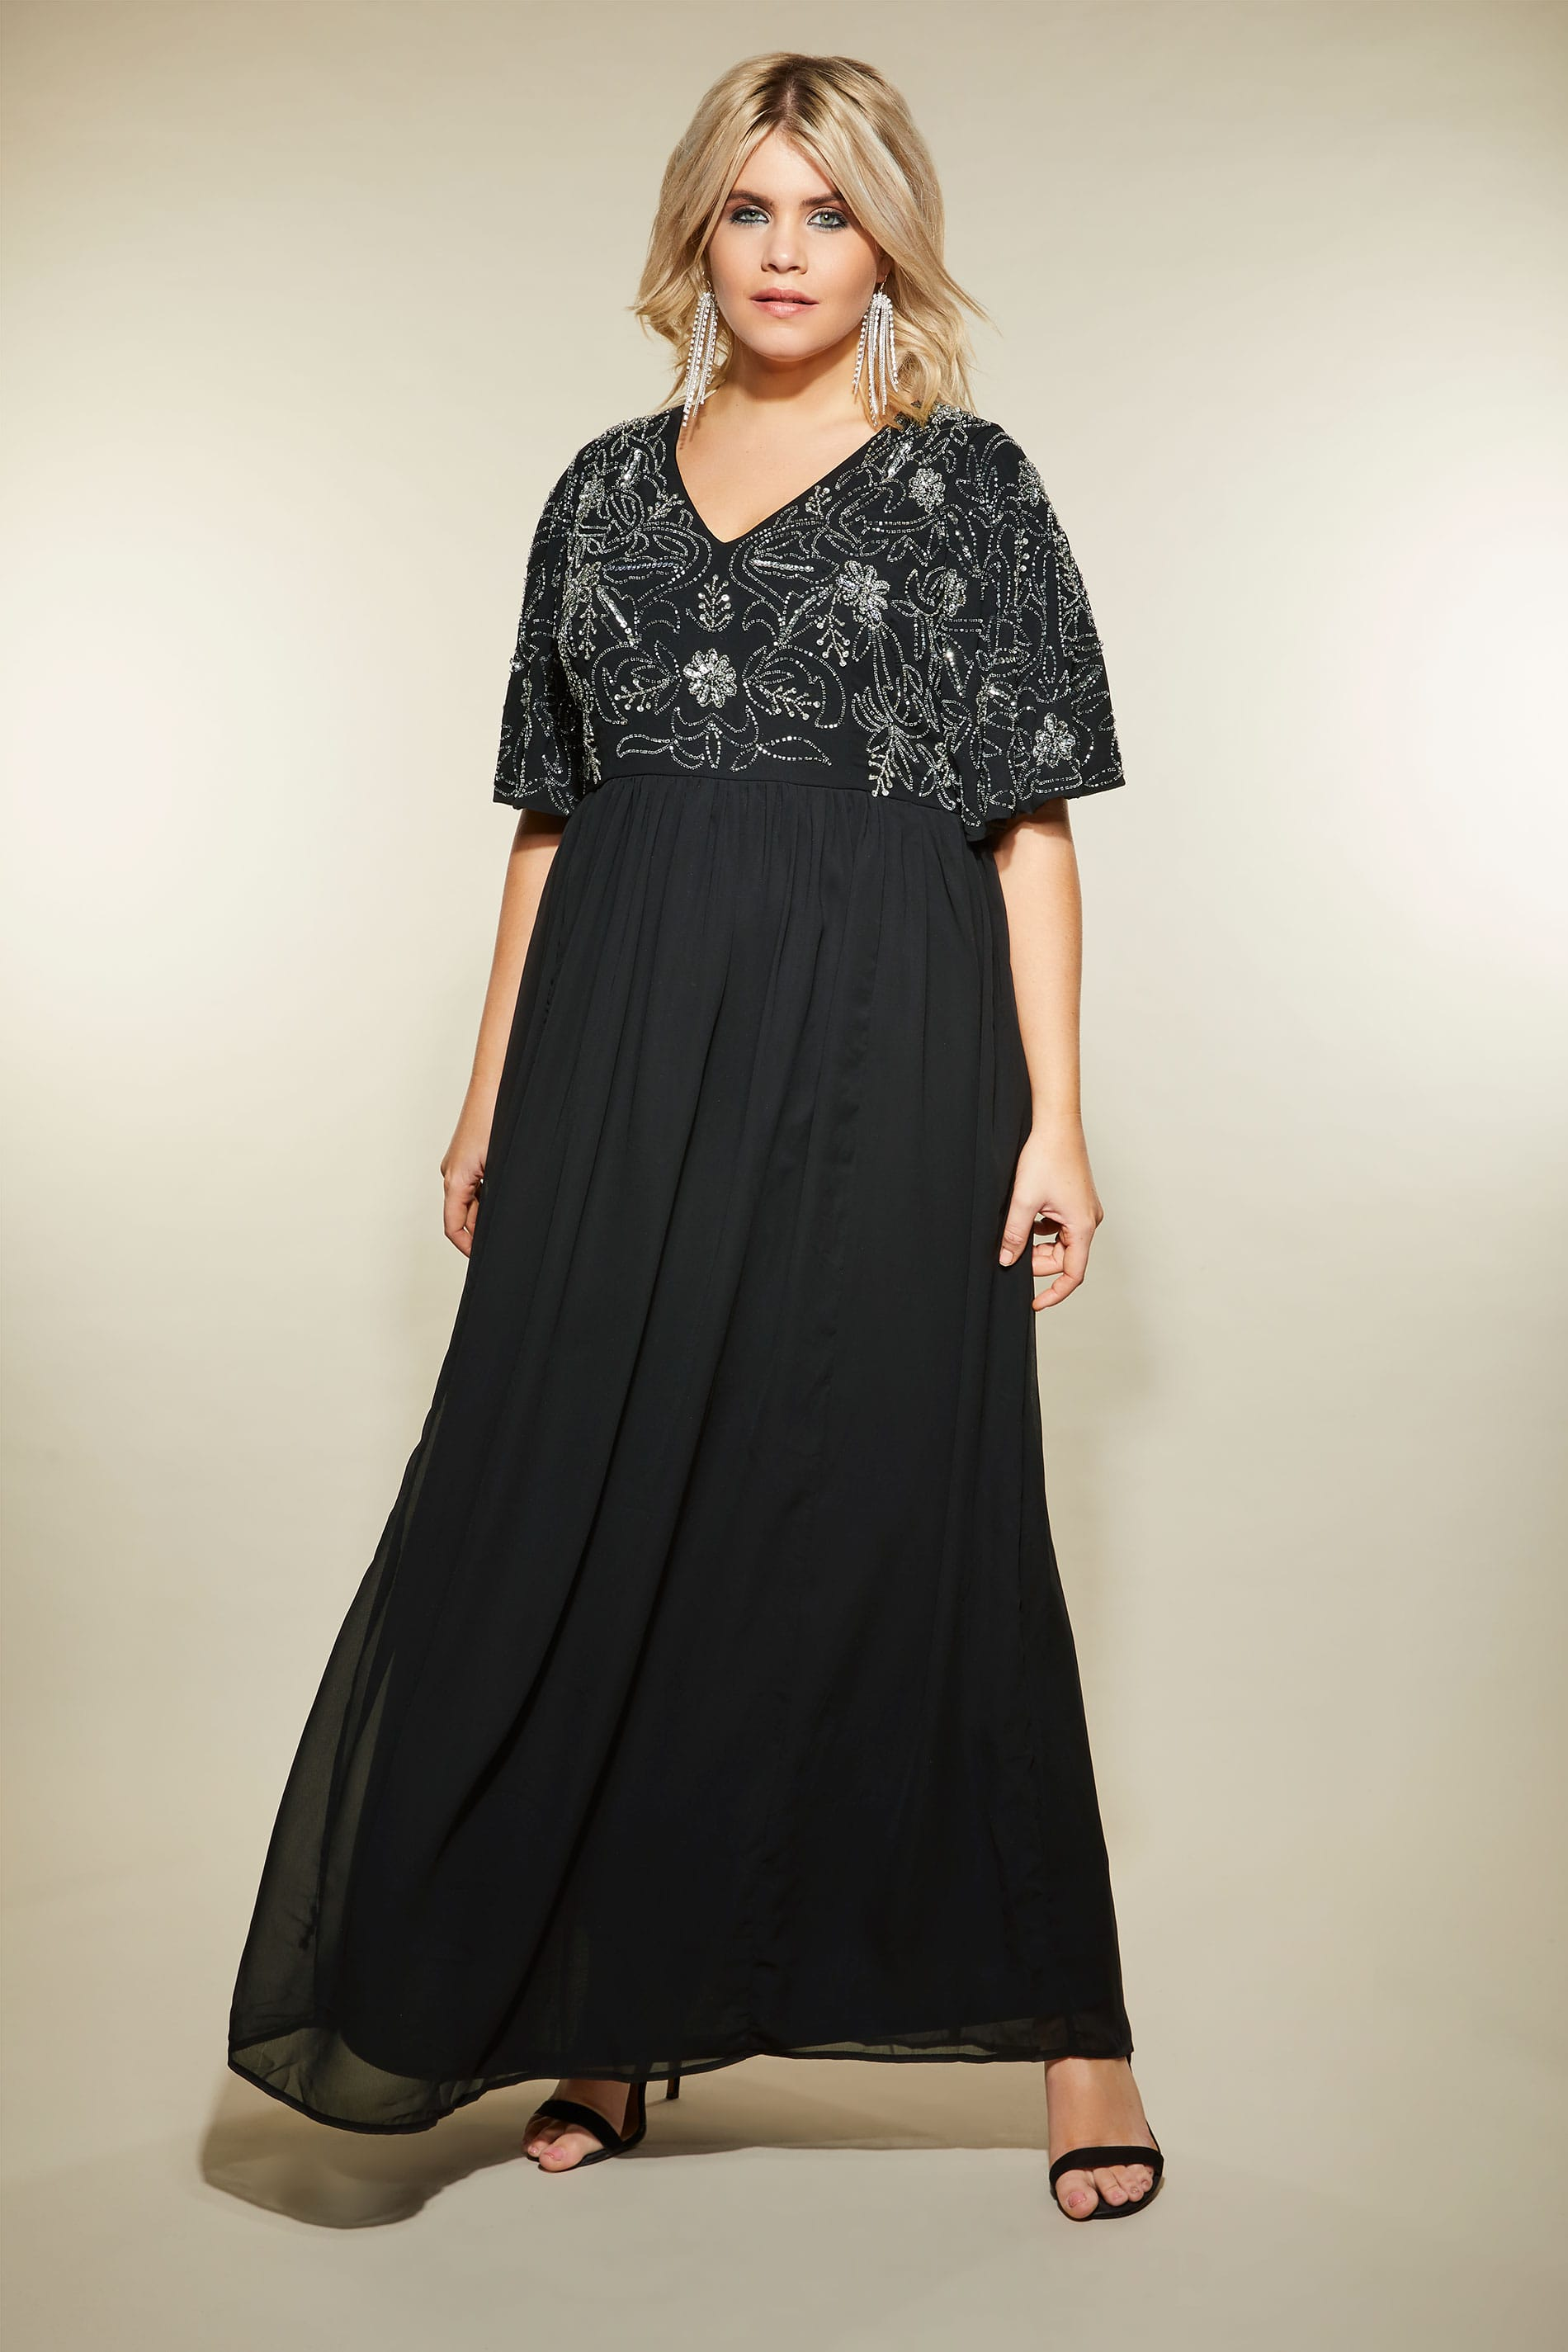 806dce9bc0e LUXE Black Embellished Maxi Dress